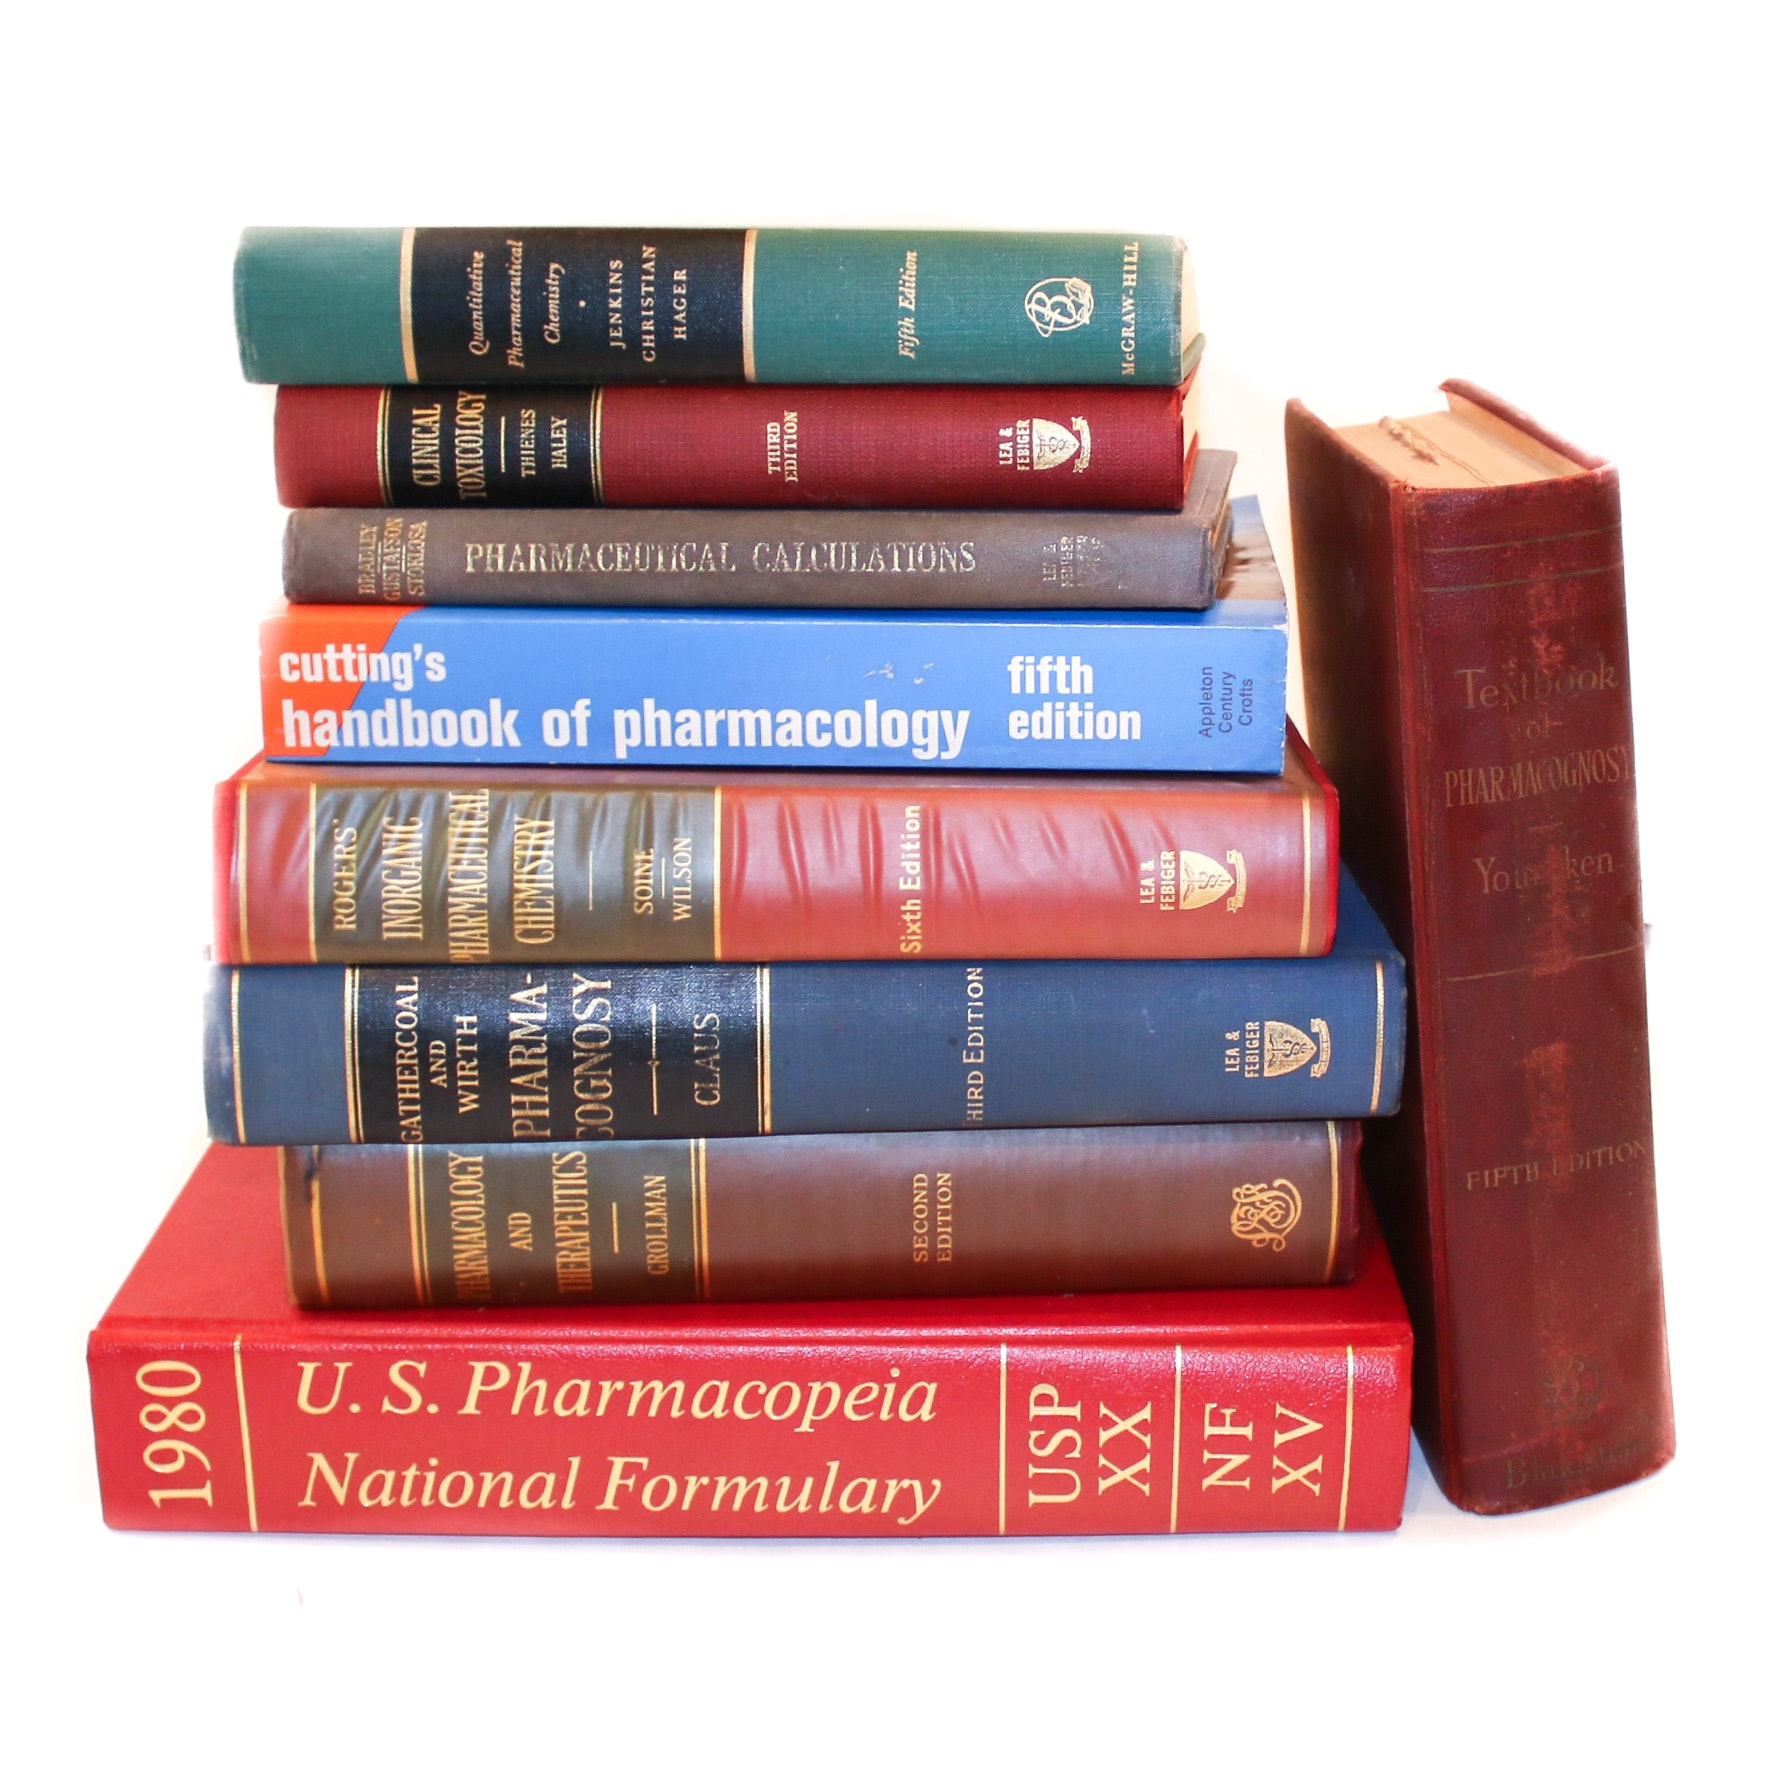 Pharmacology Reference Books and Textbooks